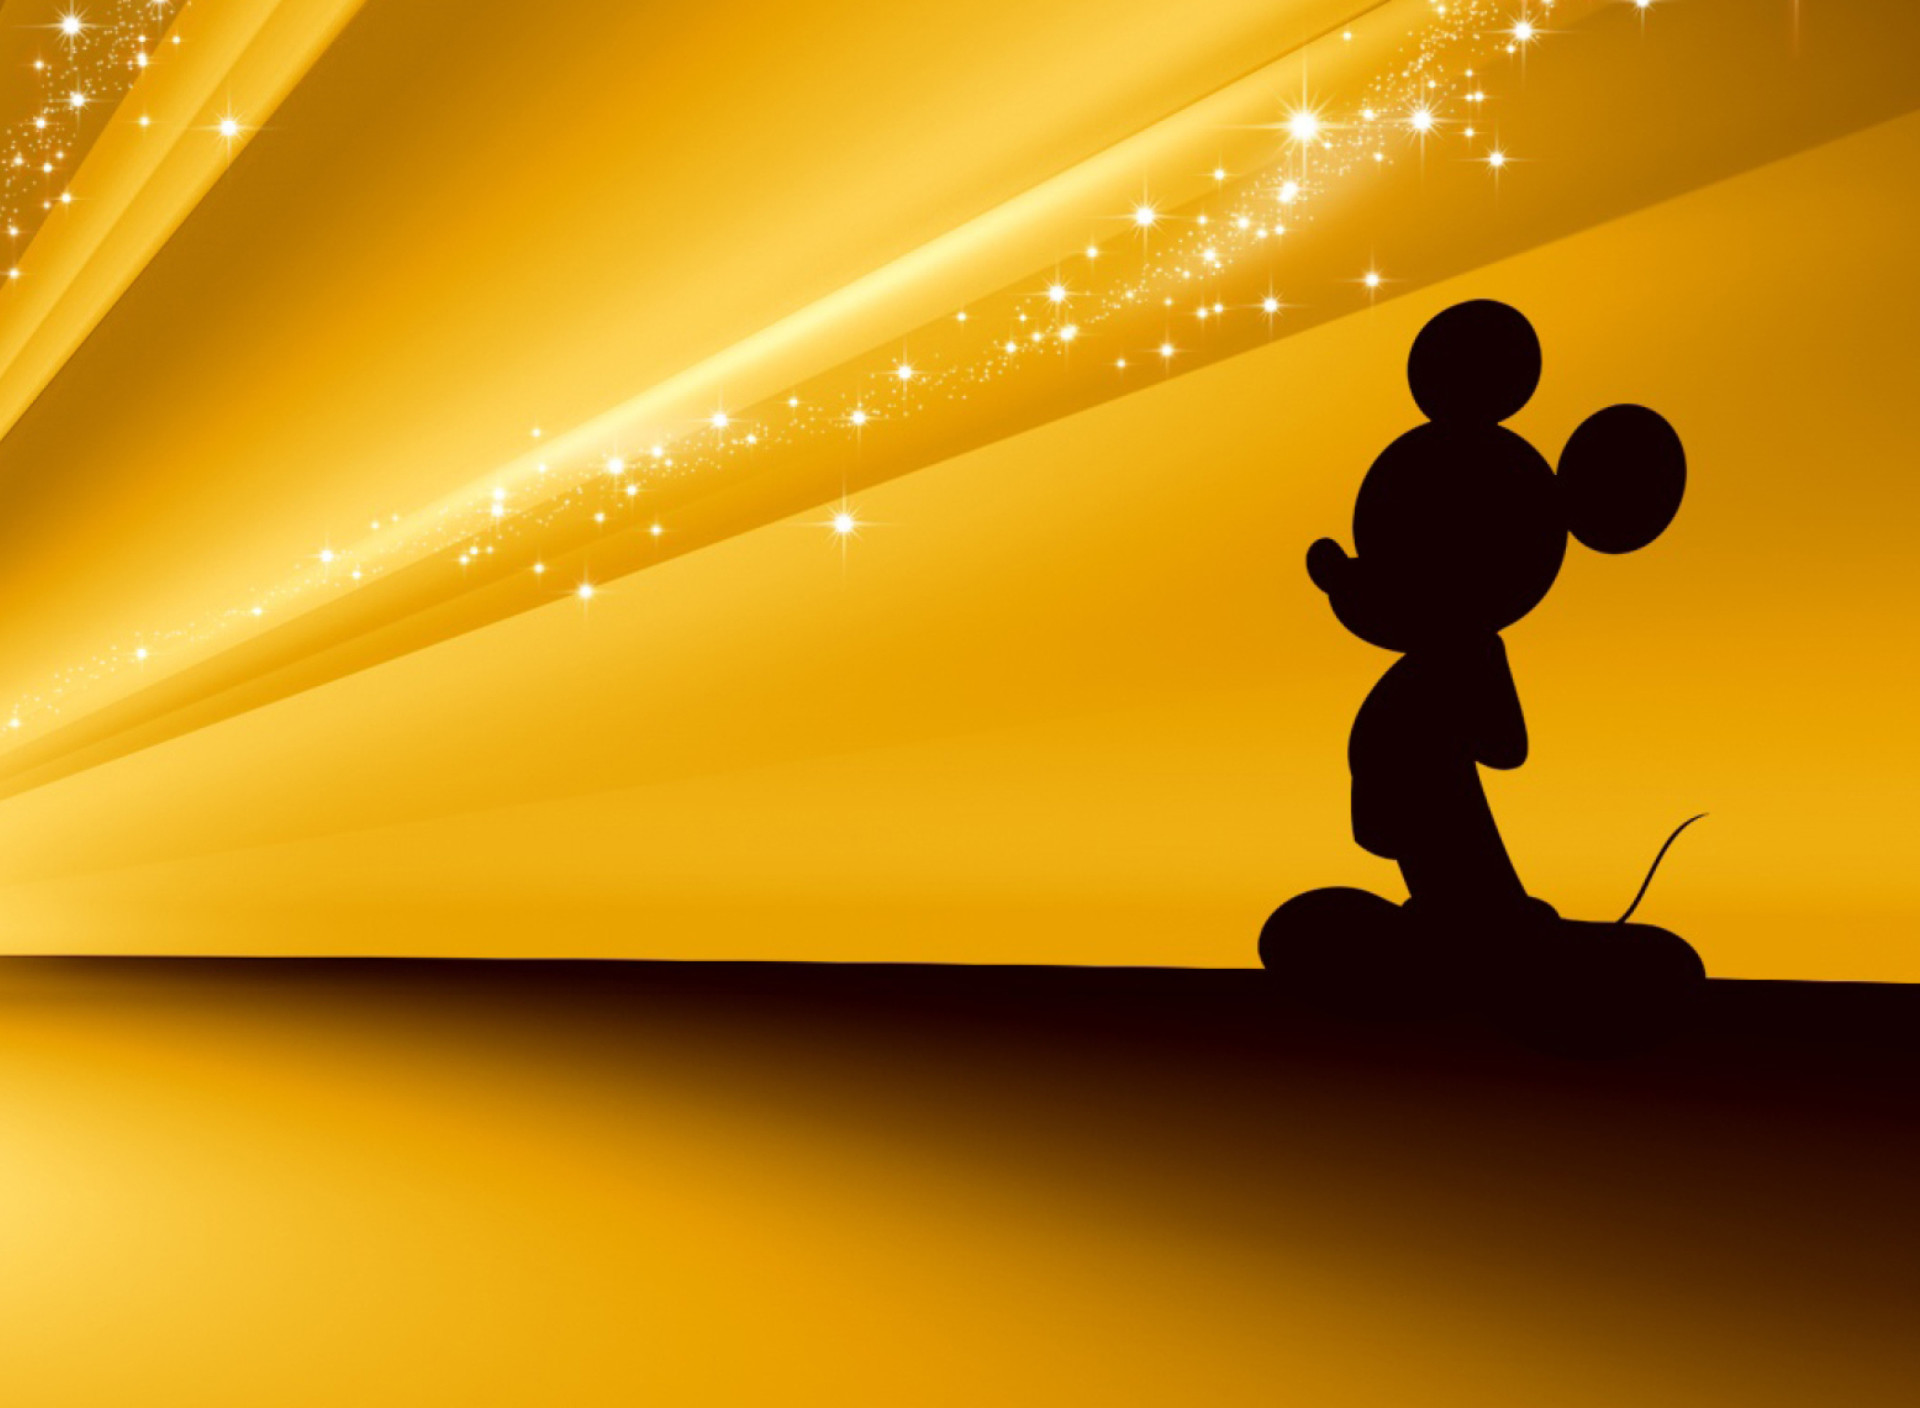 1920x1408 Mouse Disney Gold Wallpaper Wallpaper for Samsung Galaxy Tab 2 10.1 .